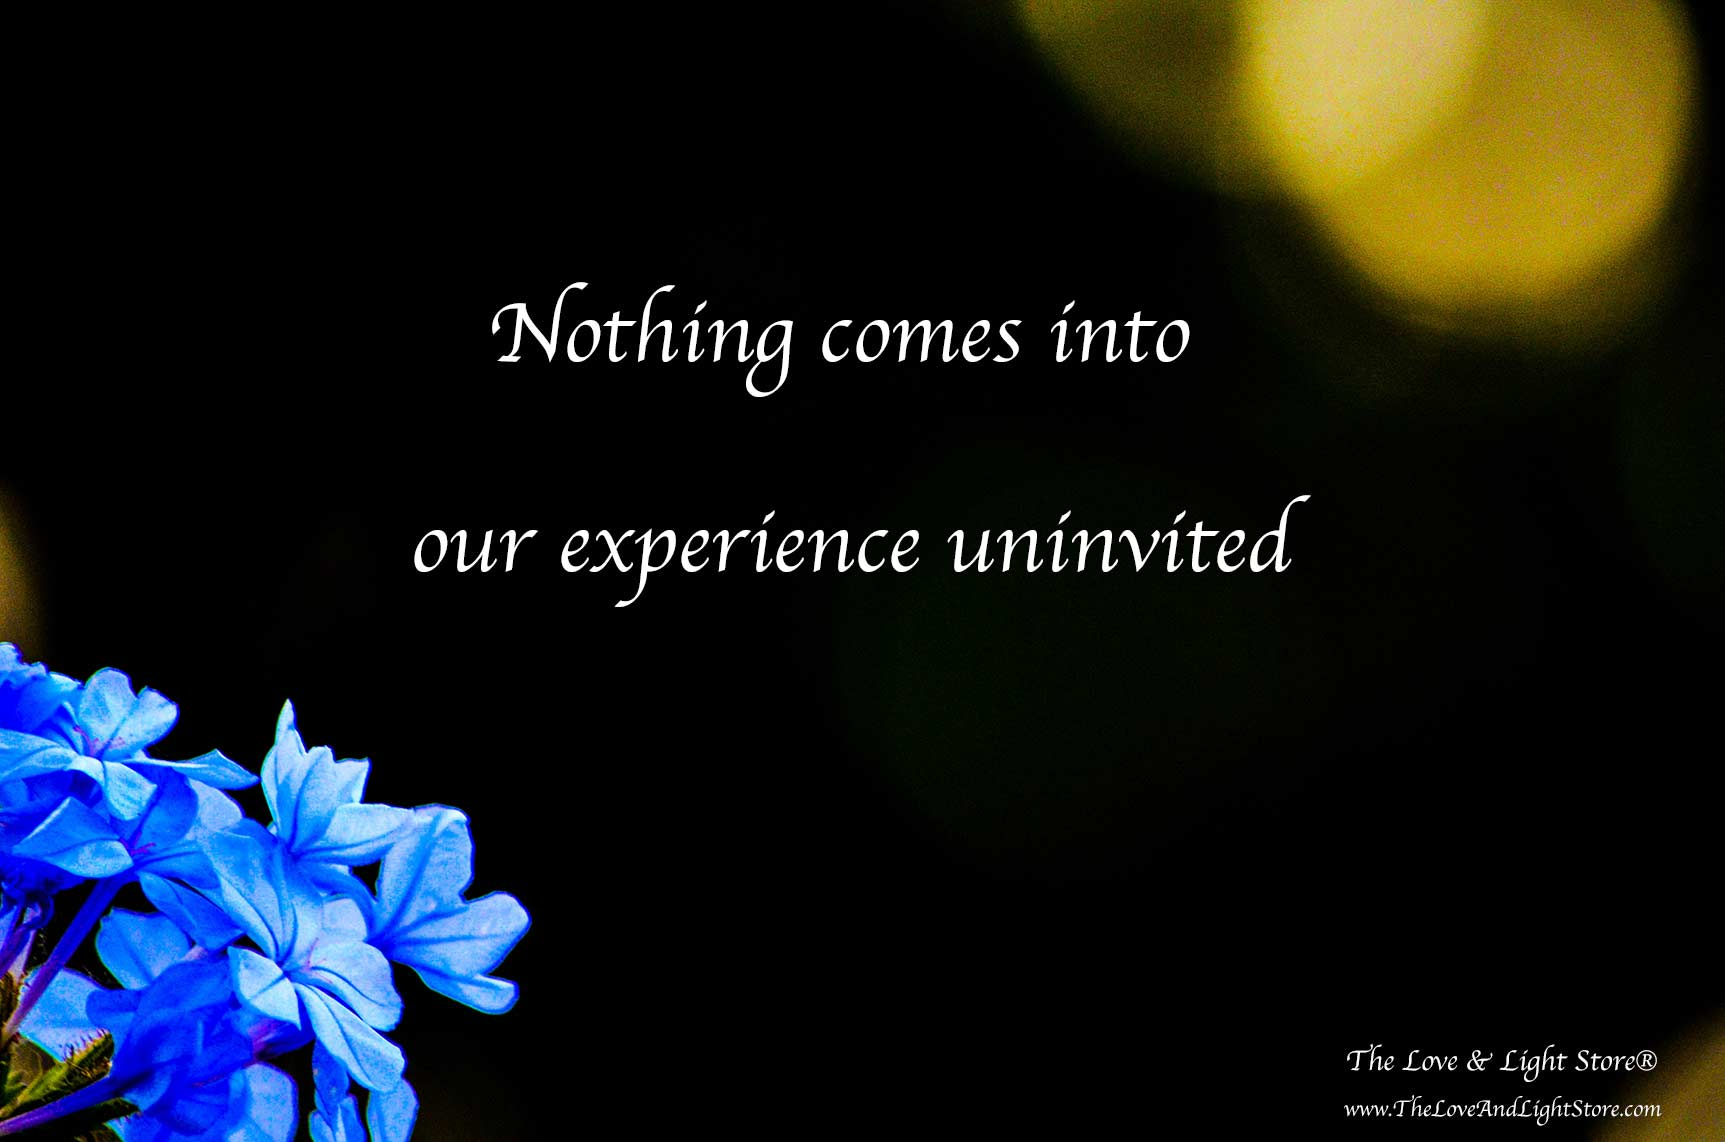 Nothing comes into our experience uninvited